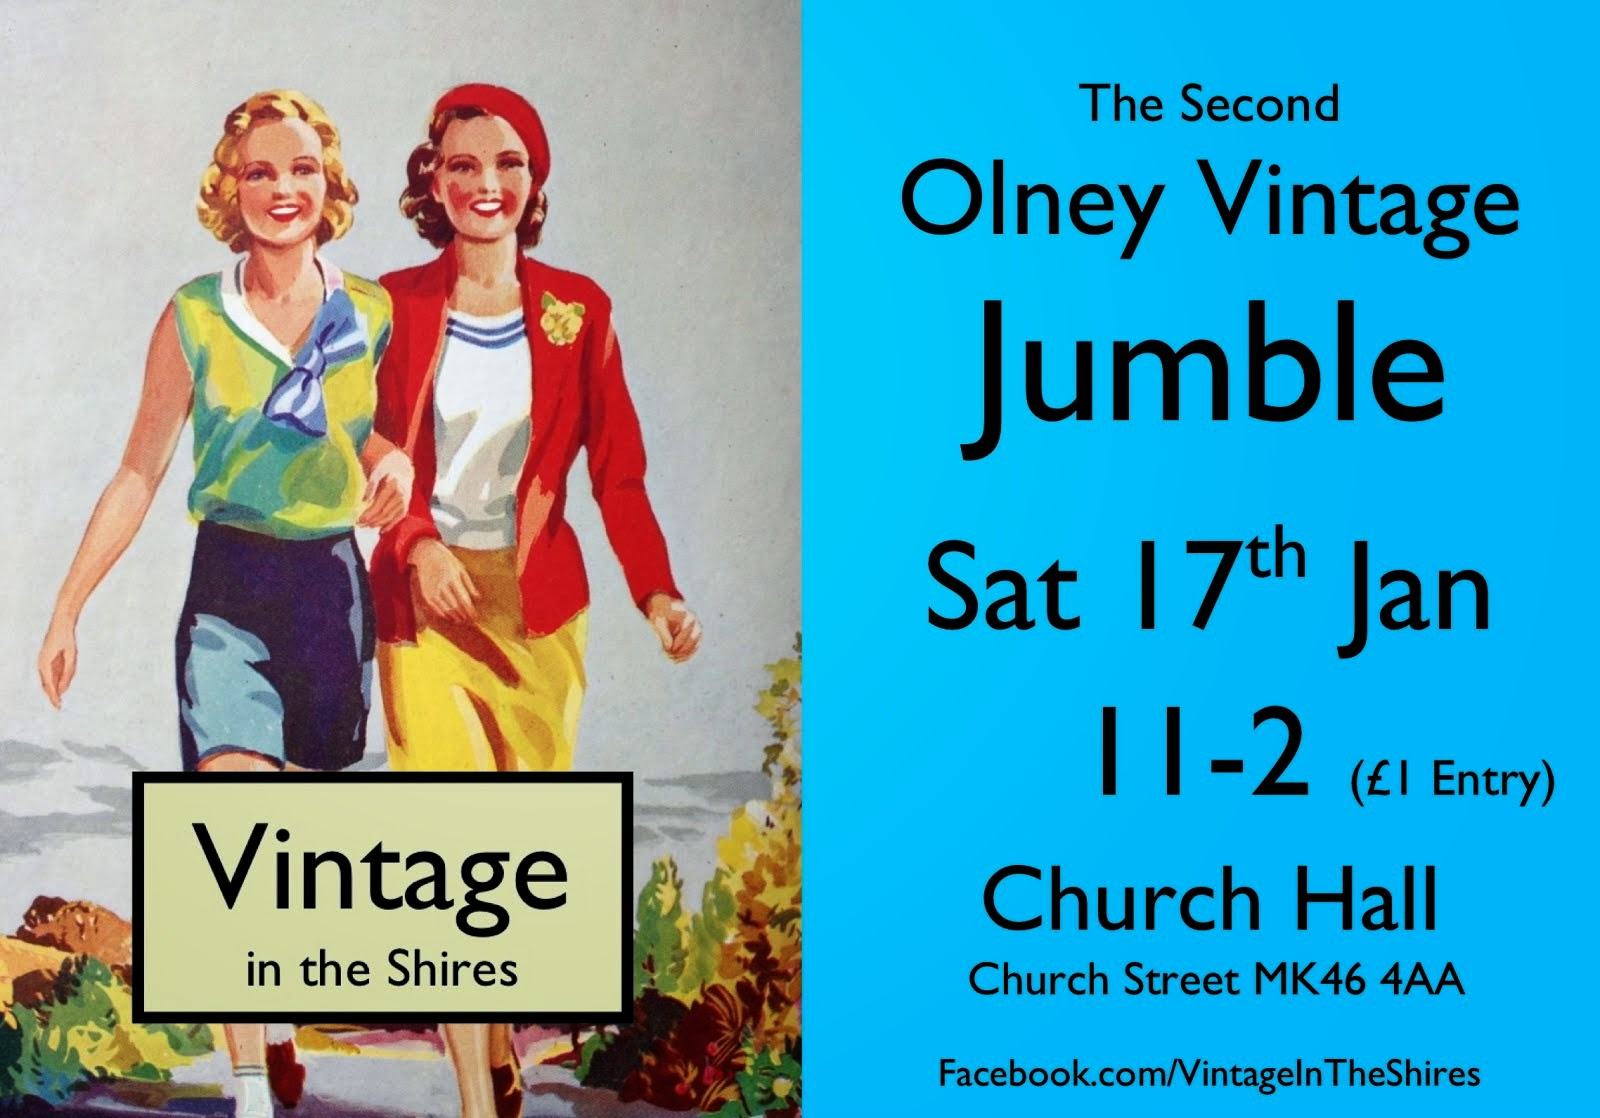 The Second Olney Vintage Jumble